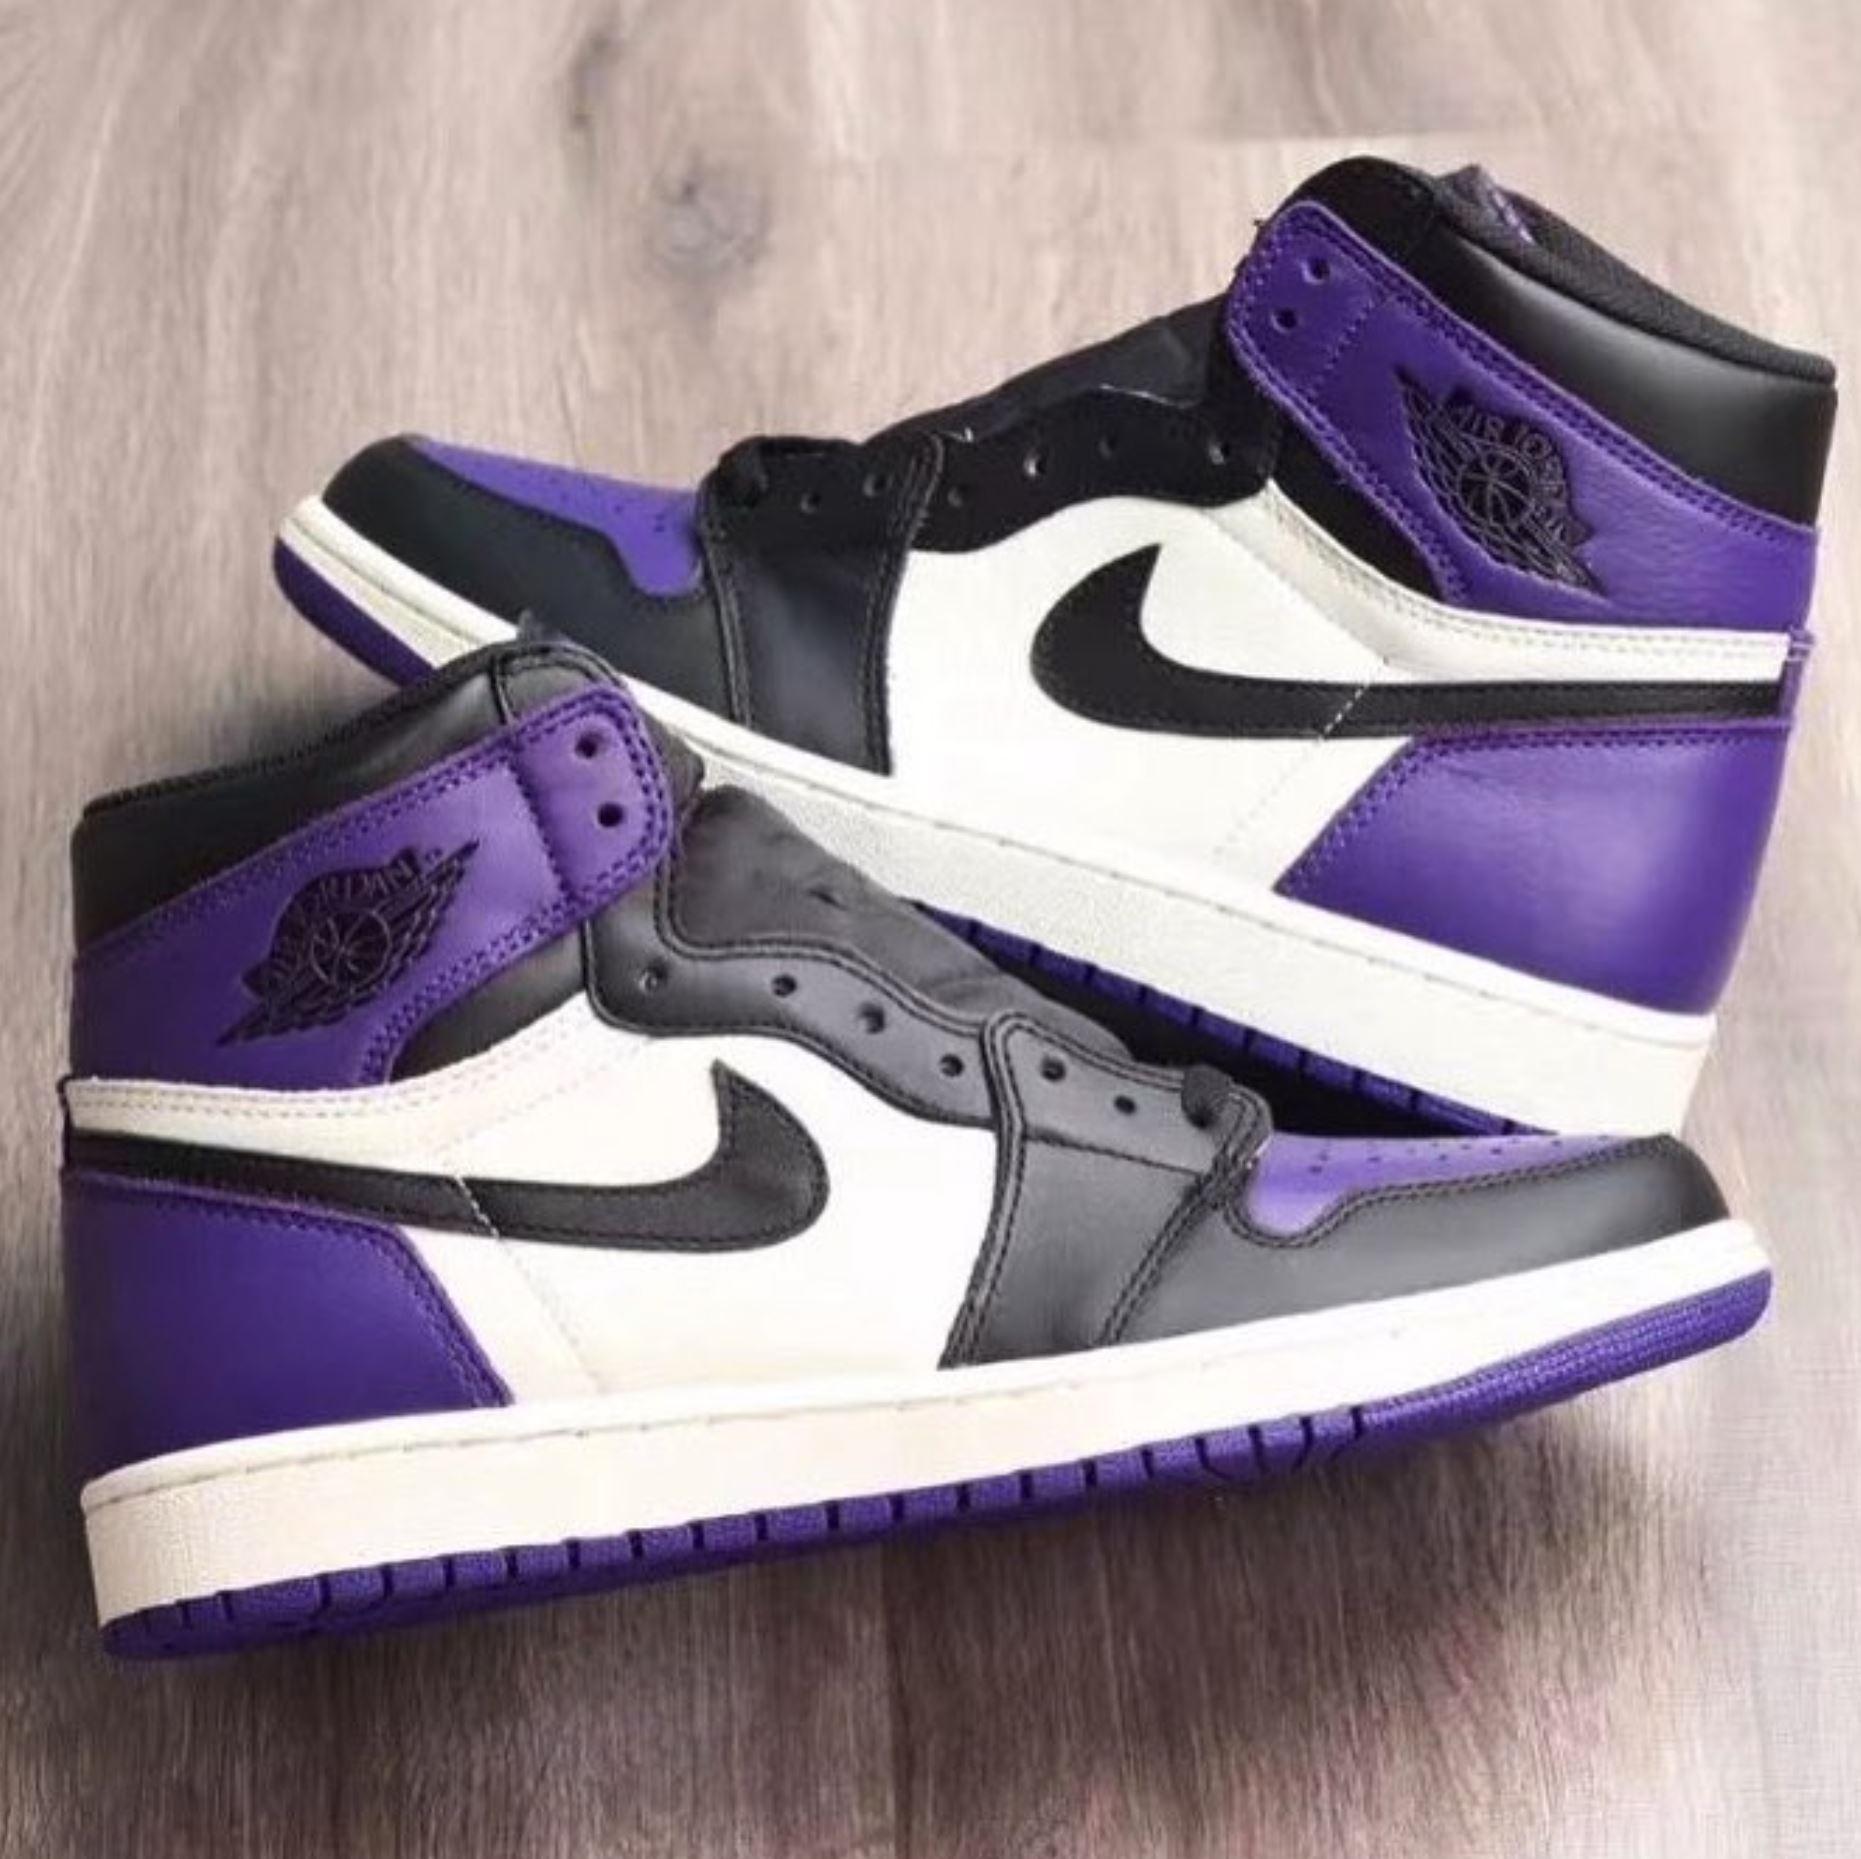 suficiente Sabor Inconveniencia  The Air Jordan 1 'Court Purple' Release is Scheduled for September -  WearTesters